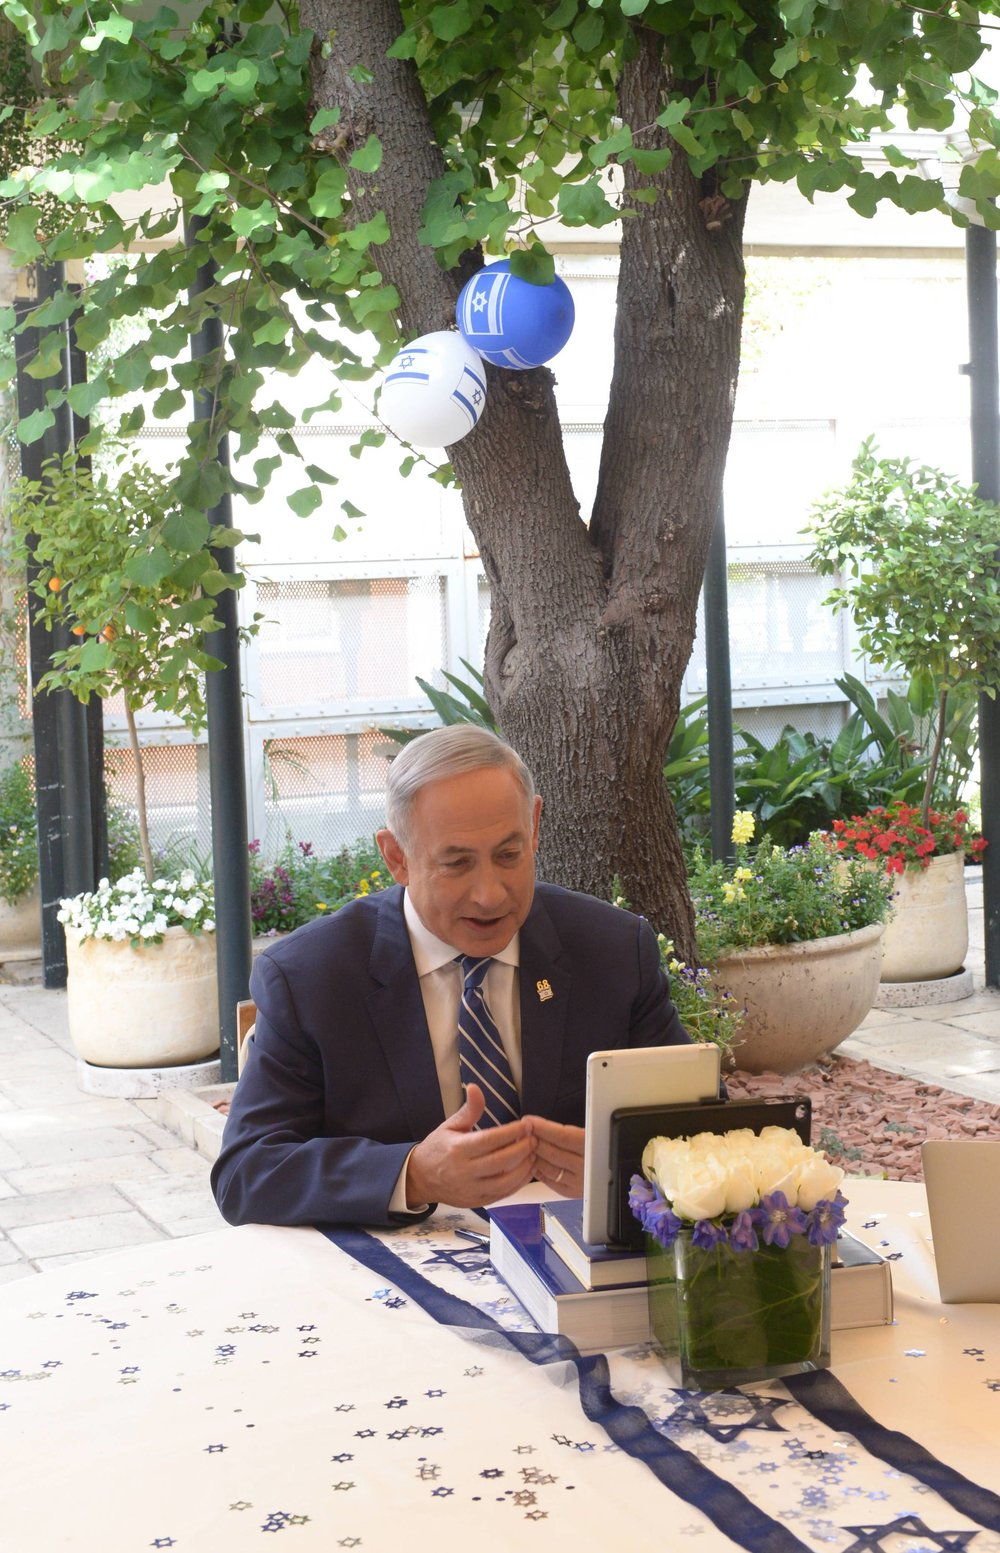 Israeli Prime Minister Benjamin Netanyahu answers questions on Twitter live at the prime minister's residence in Jerusalem,May 12, 2016. Credit: Amos Ben Gershom/GPO.